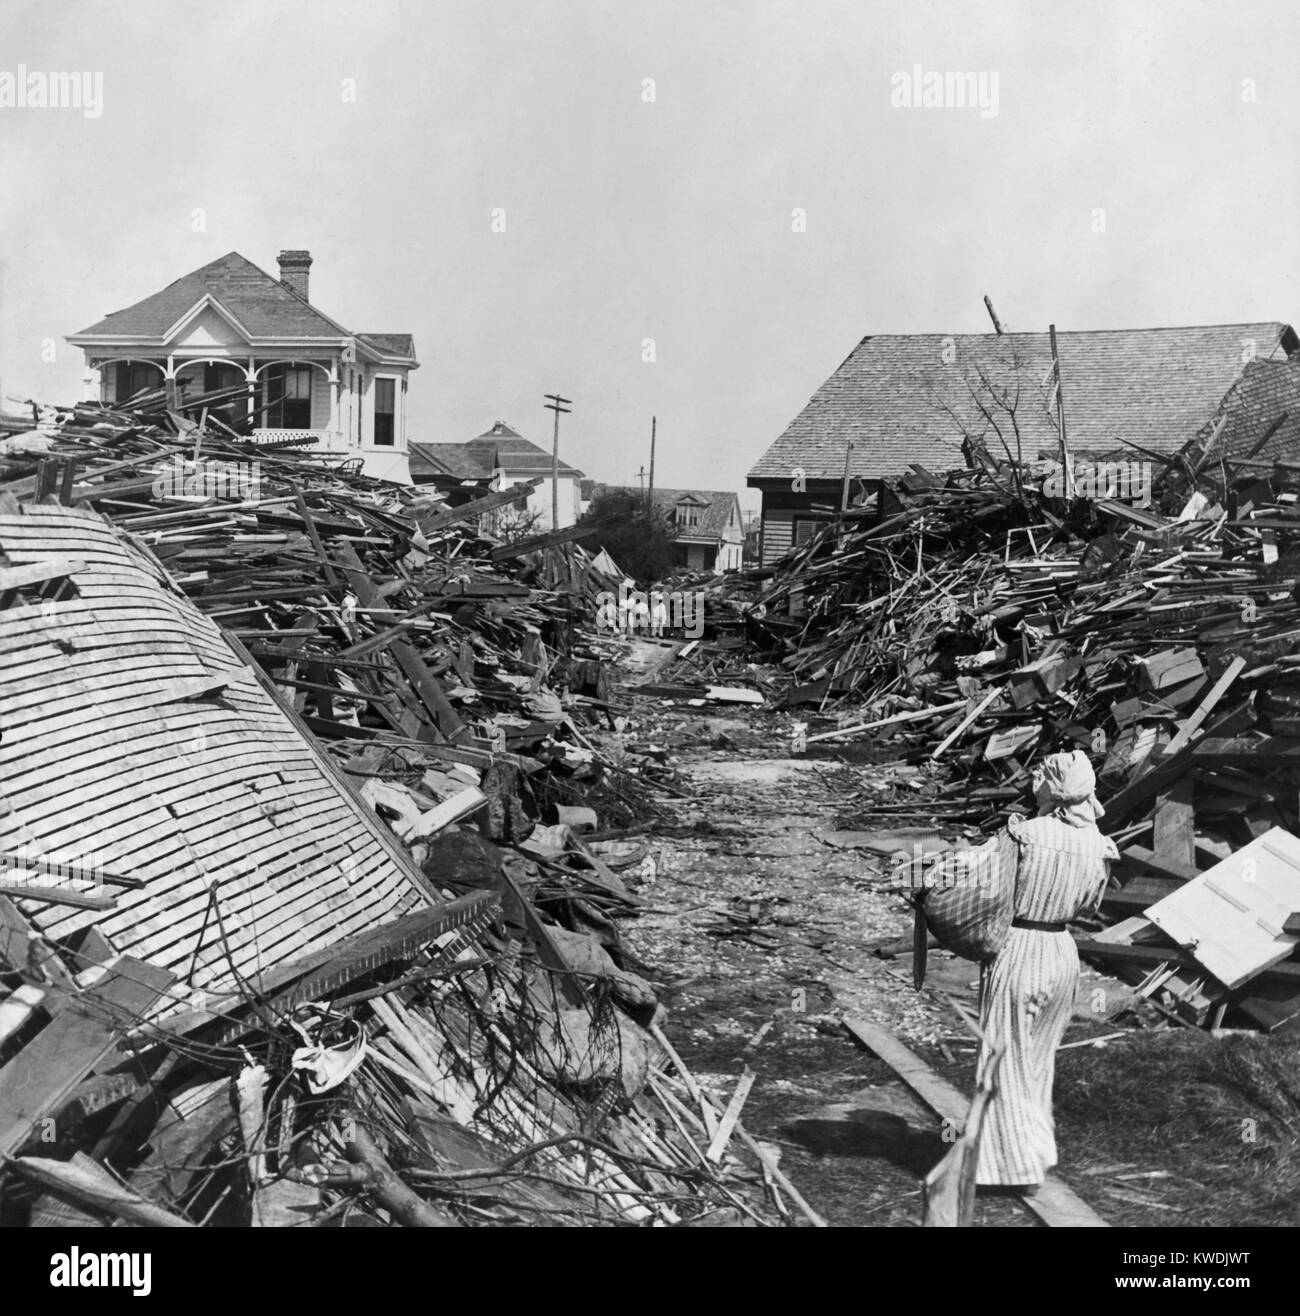 A woman walks through a passageway opened in the debris, on 19th Street, Galveston, Texas. In the distance stand - Stock Image